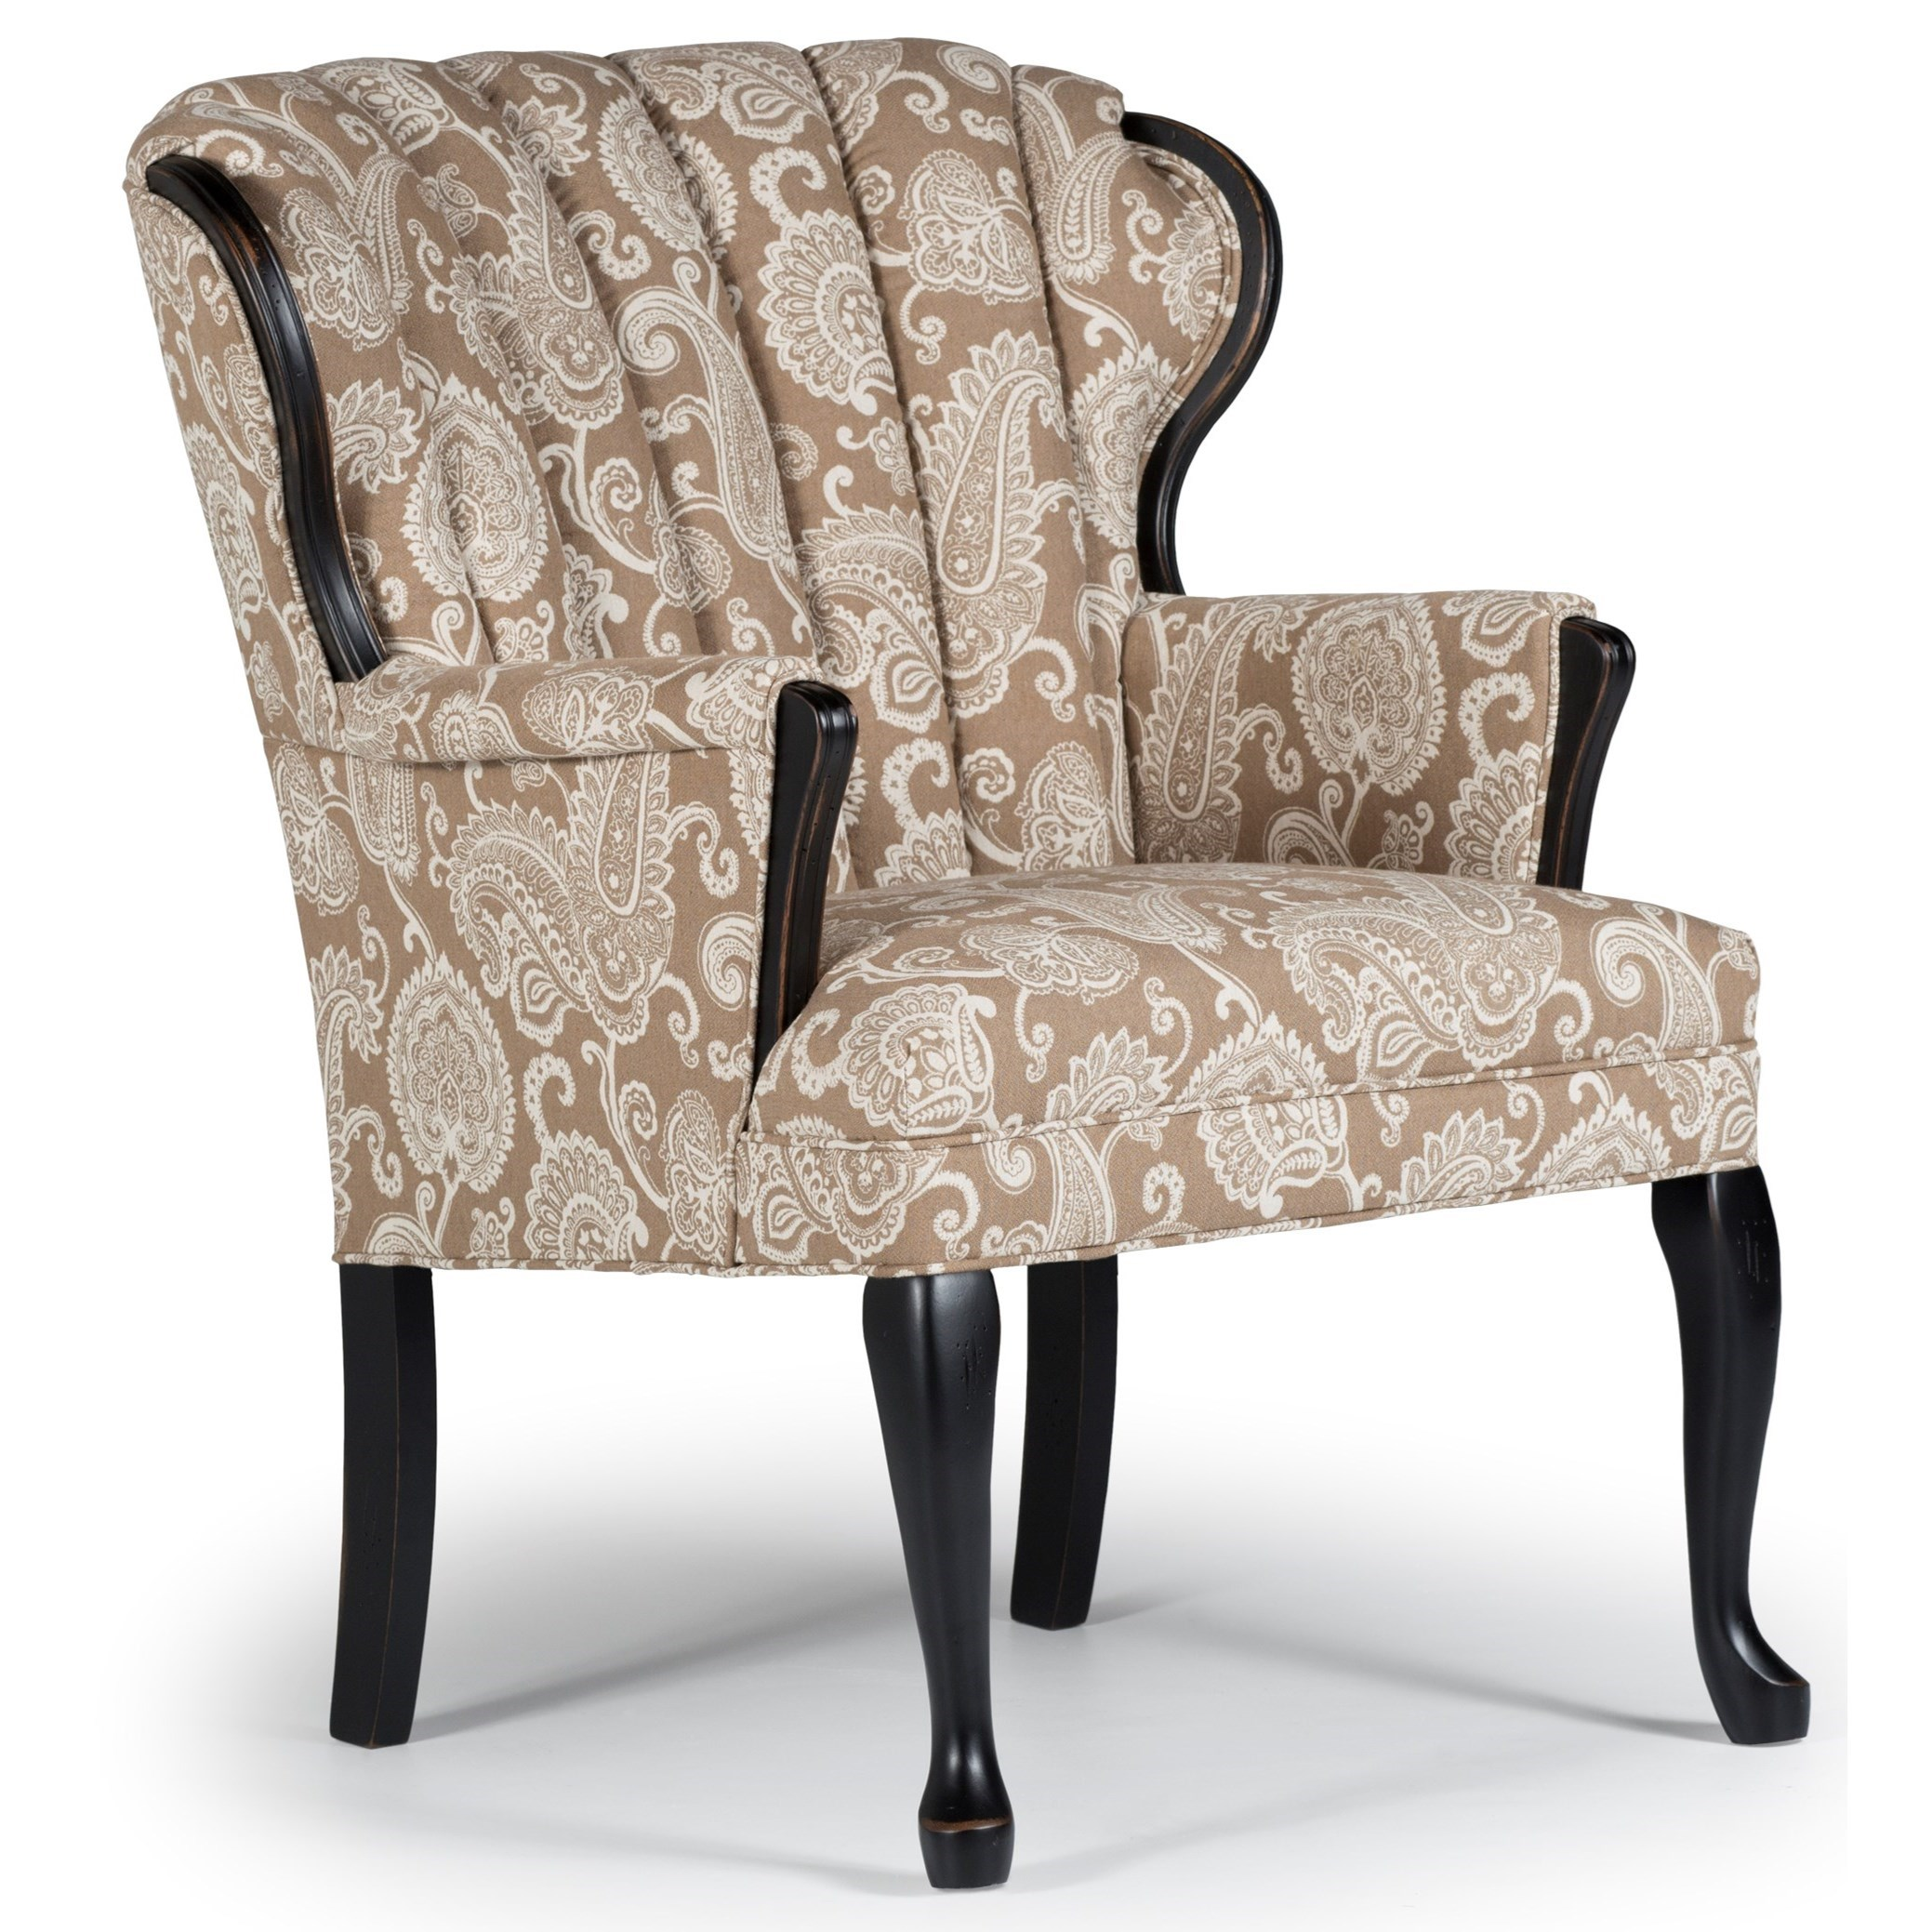 Best Home Furnishings Accent Chairs Prudence Exposed Wood